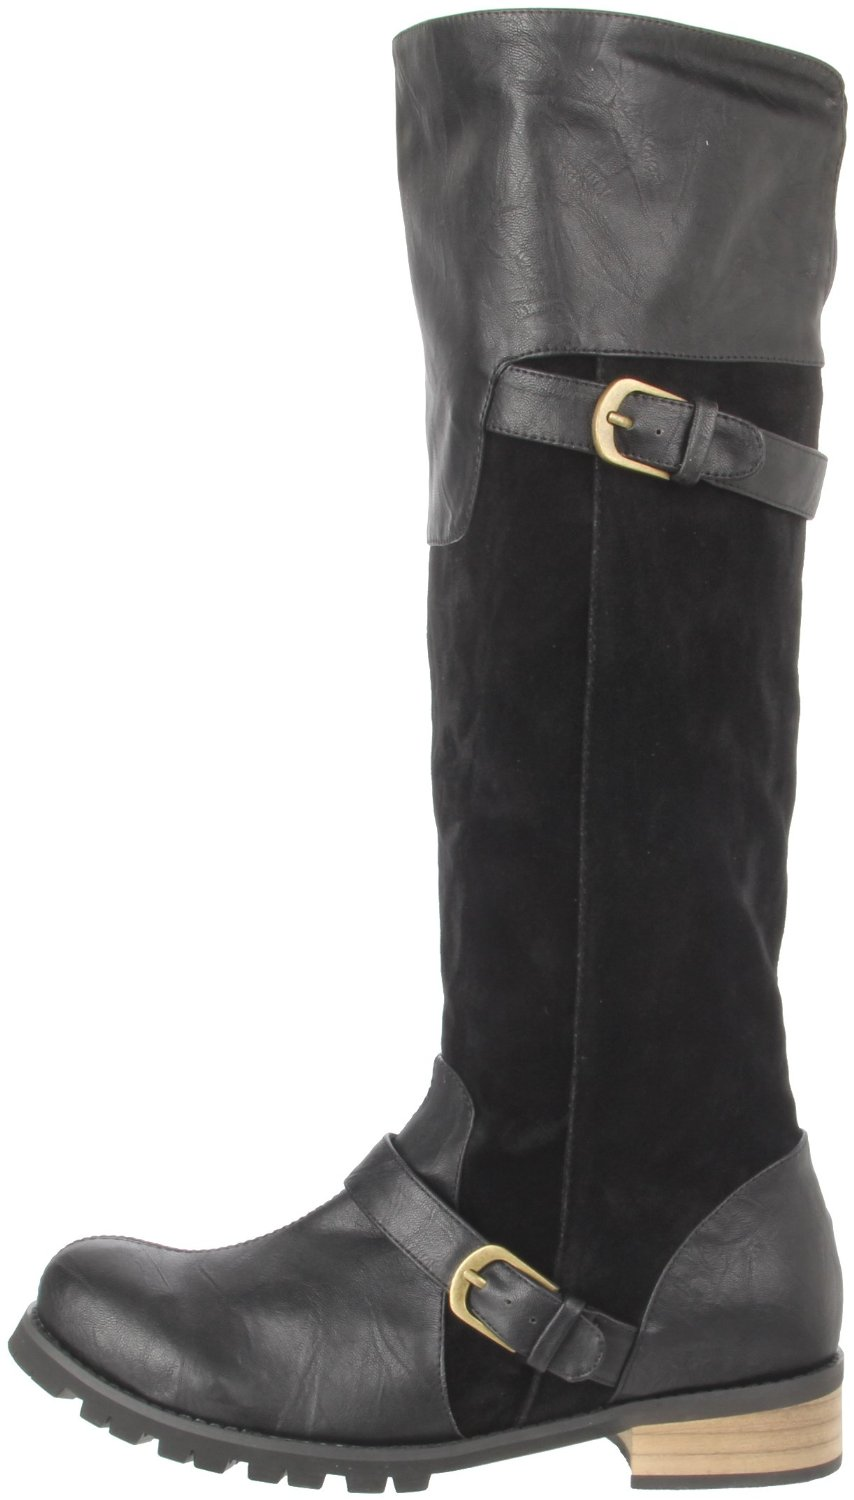 Two-toned vegan knee high boots